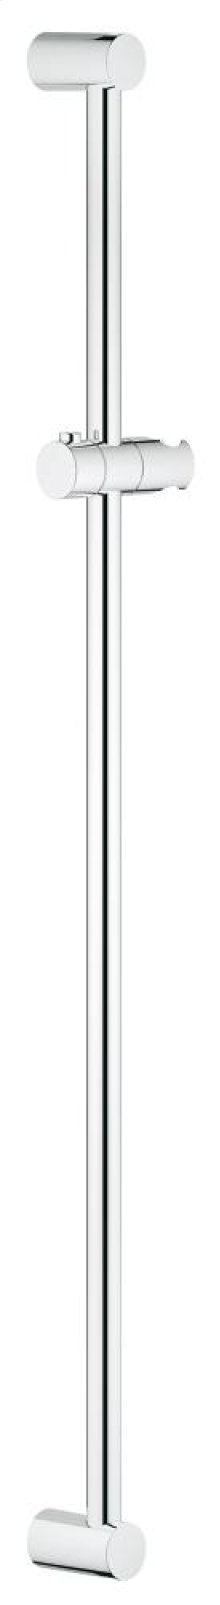 "Tempesta Cosmopolitan 36"" Shower Bar"